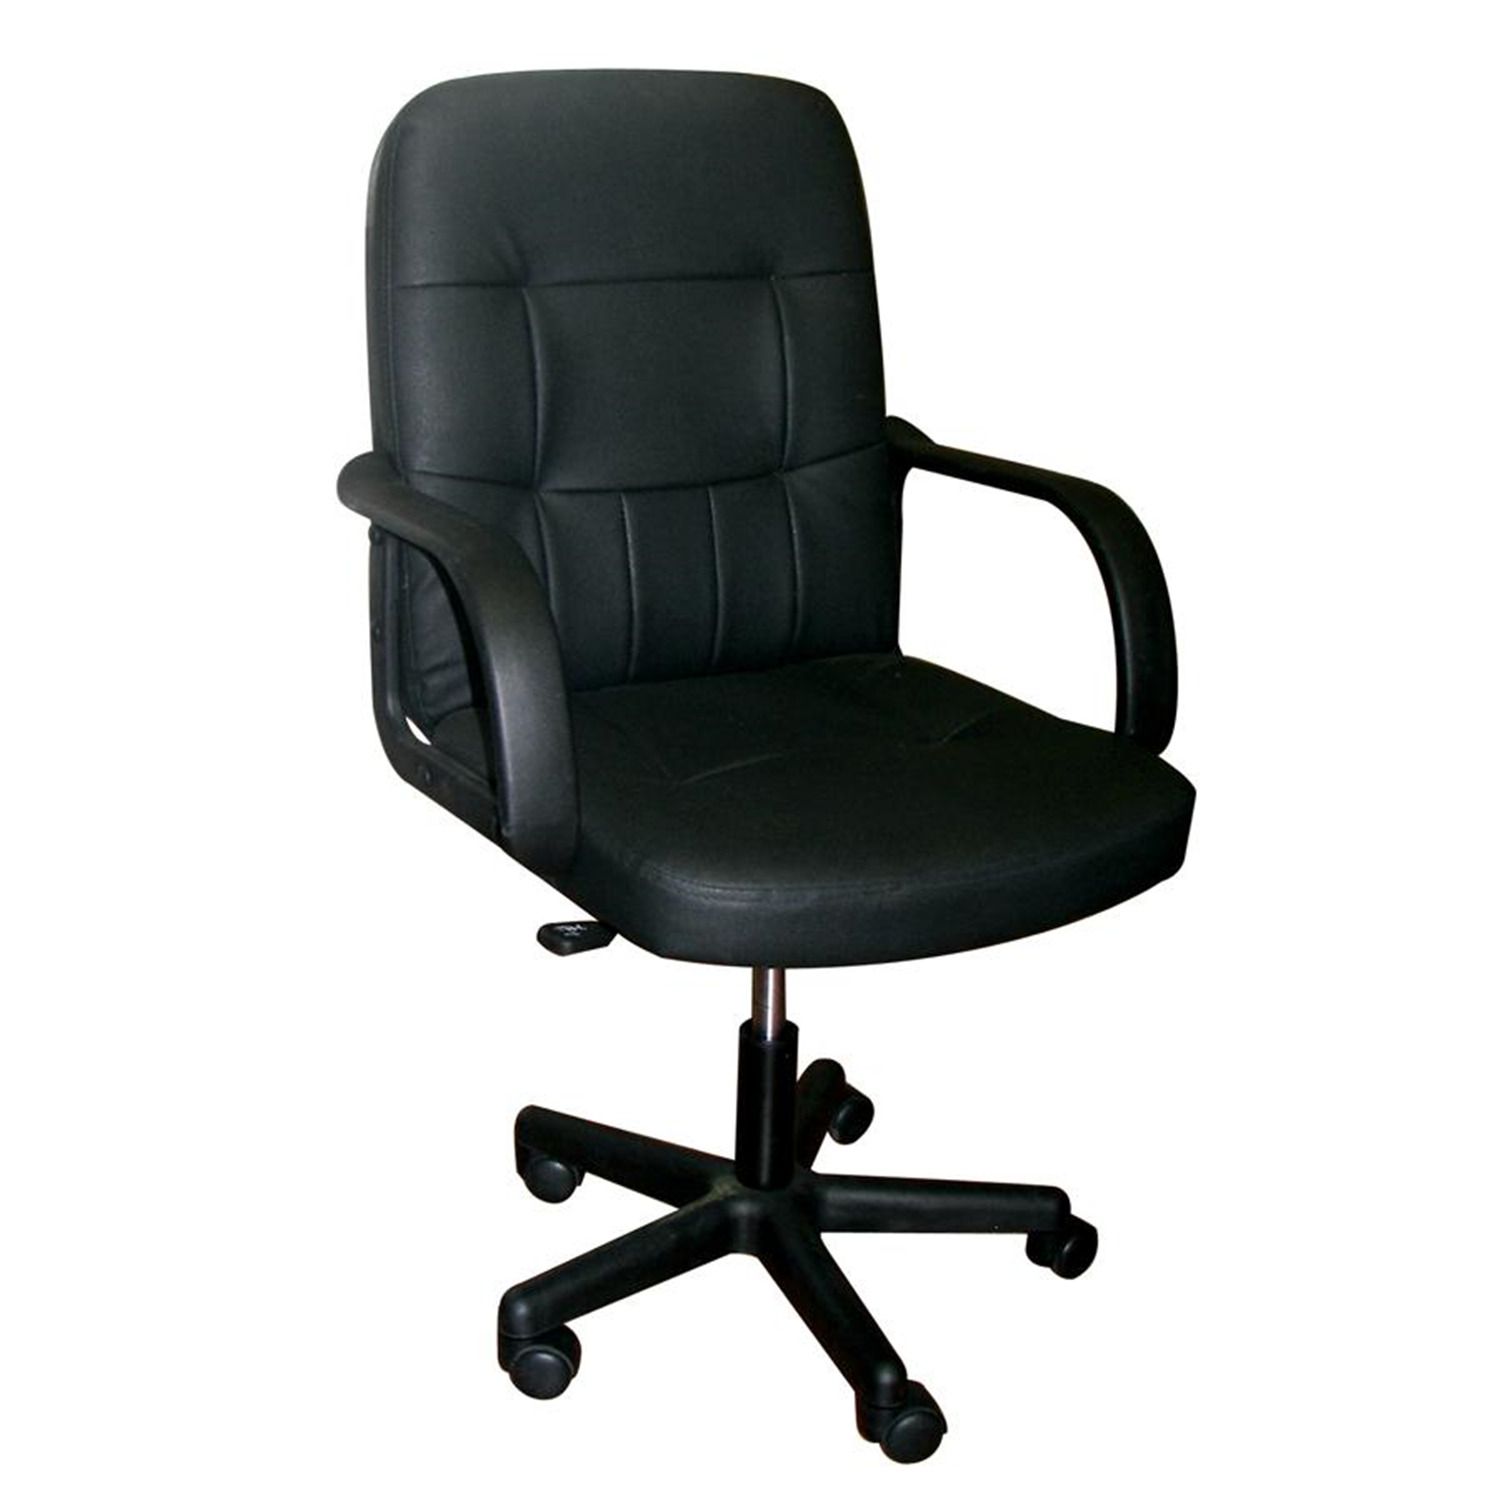 Home Source Executive fice Chair by OJ merce HT 820